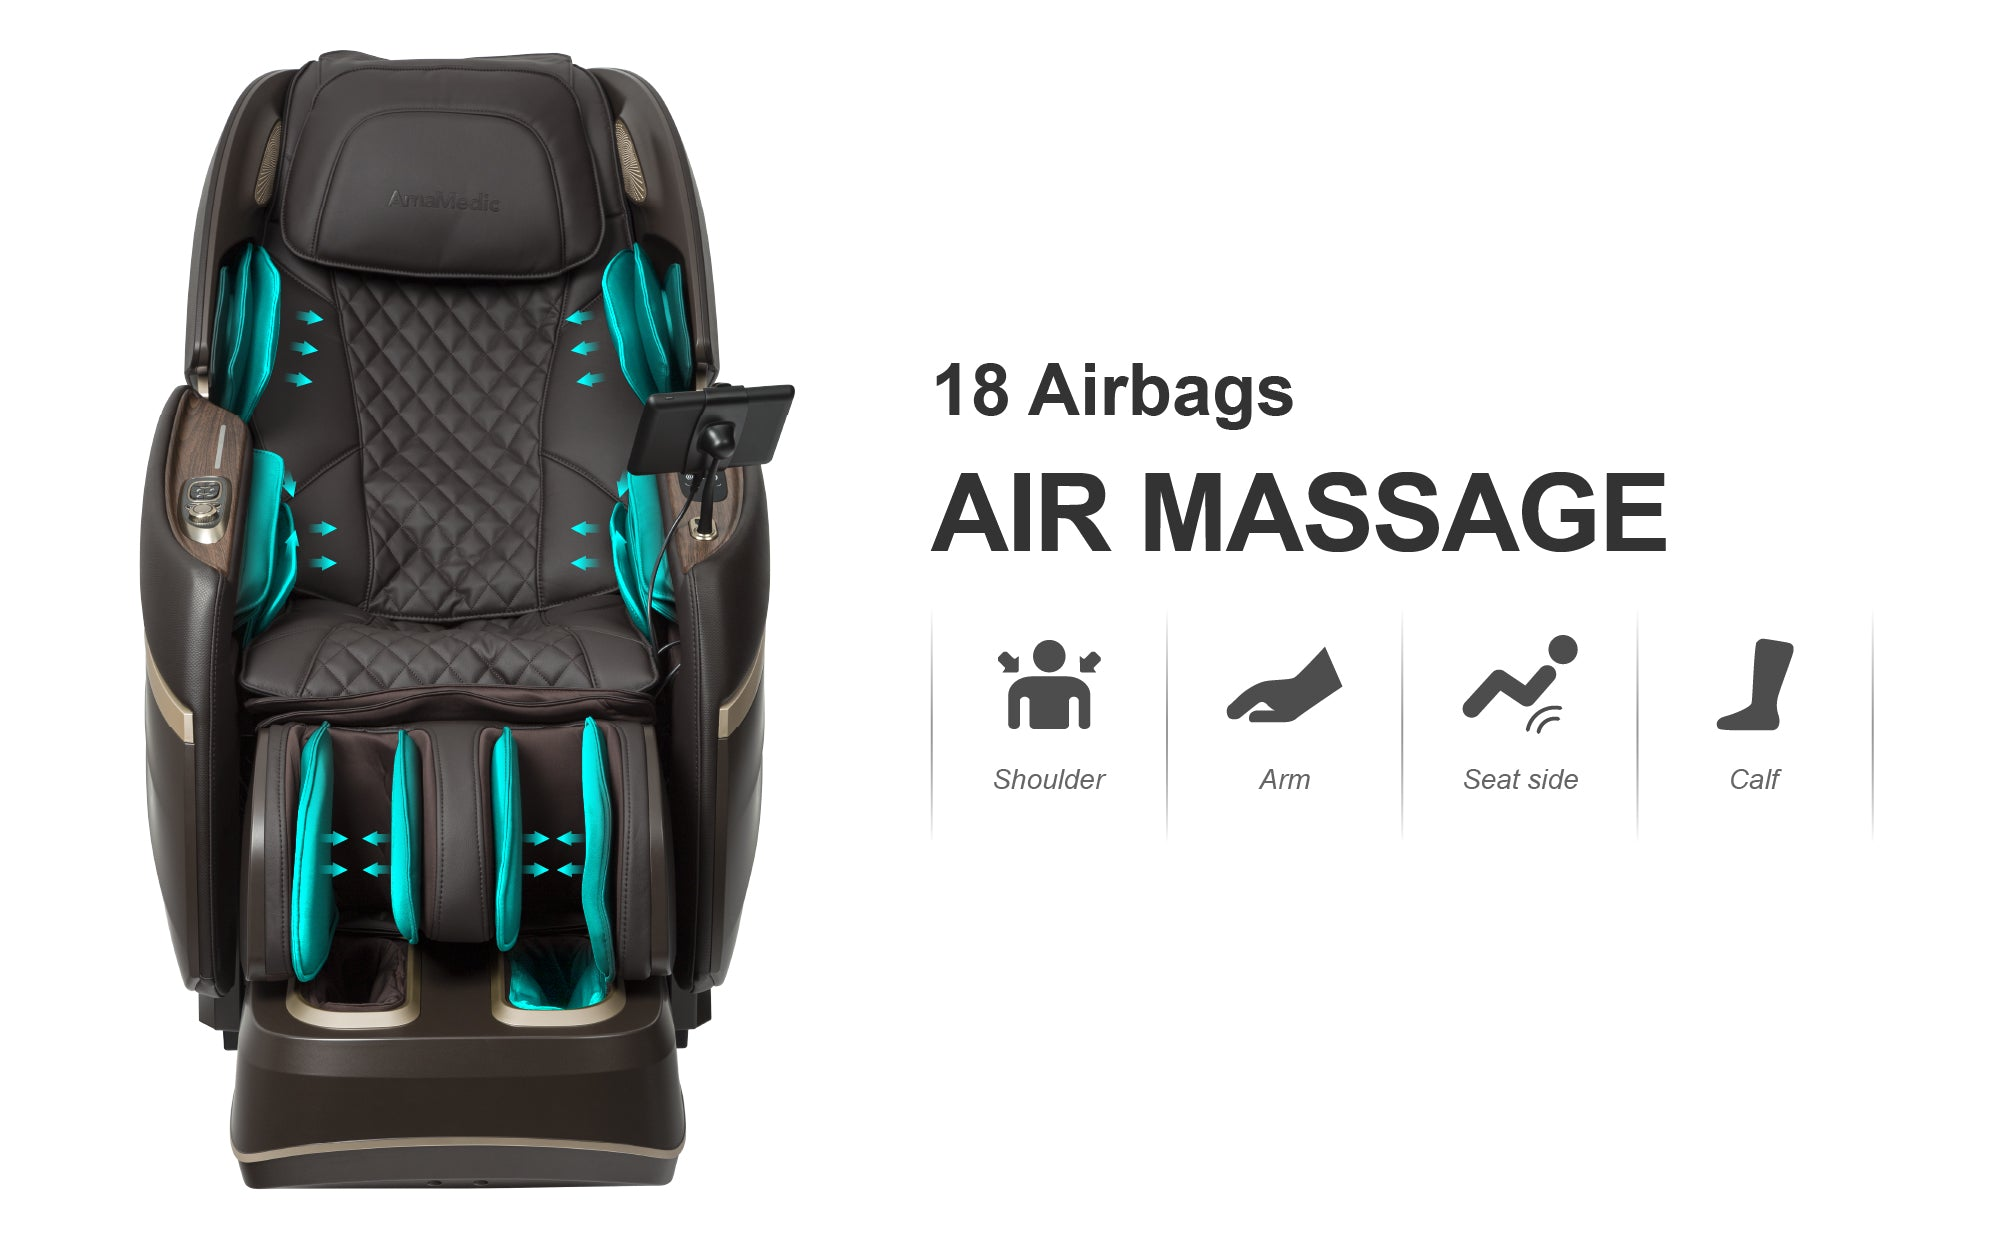 18 Airbags - Air massage